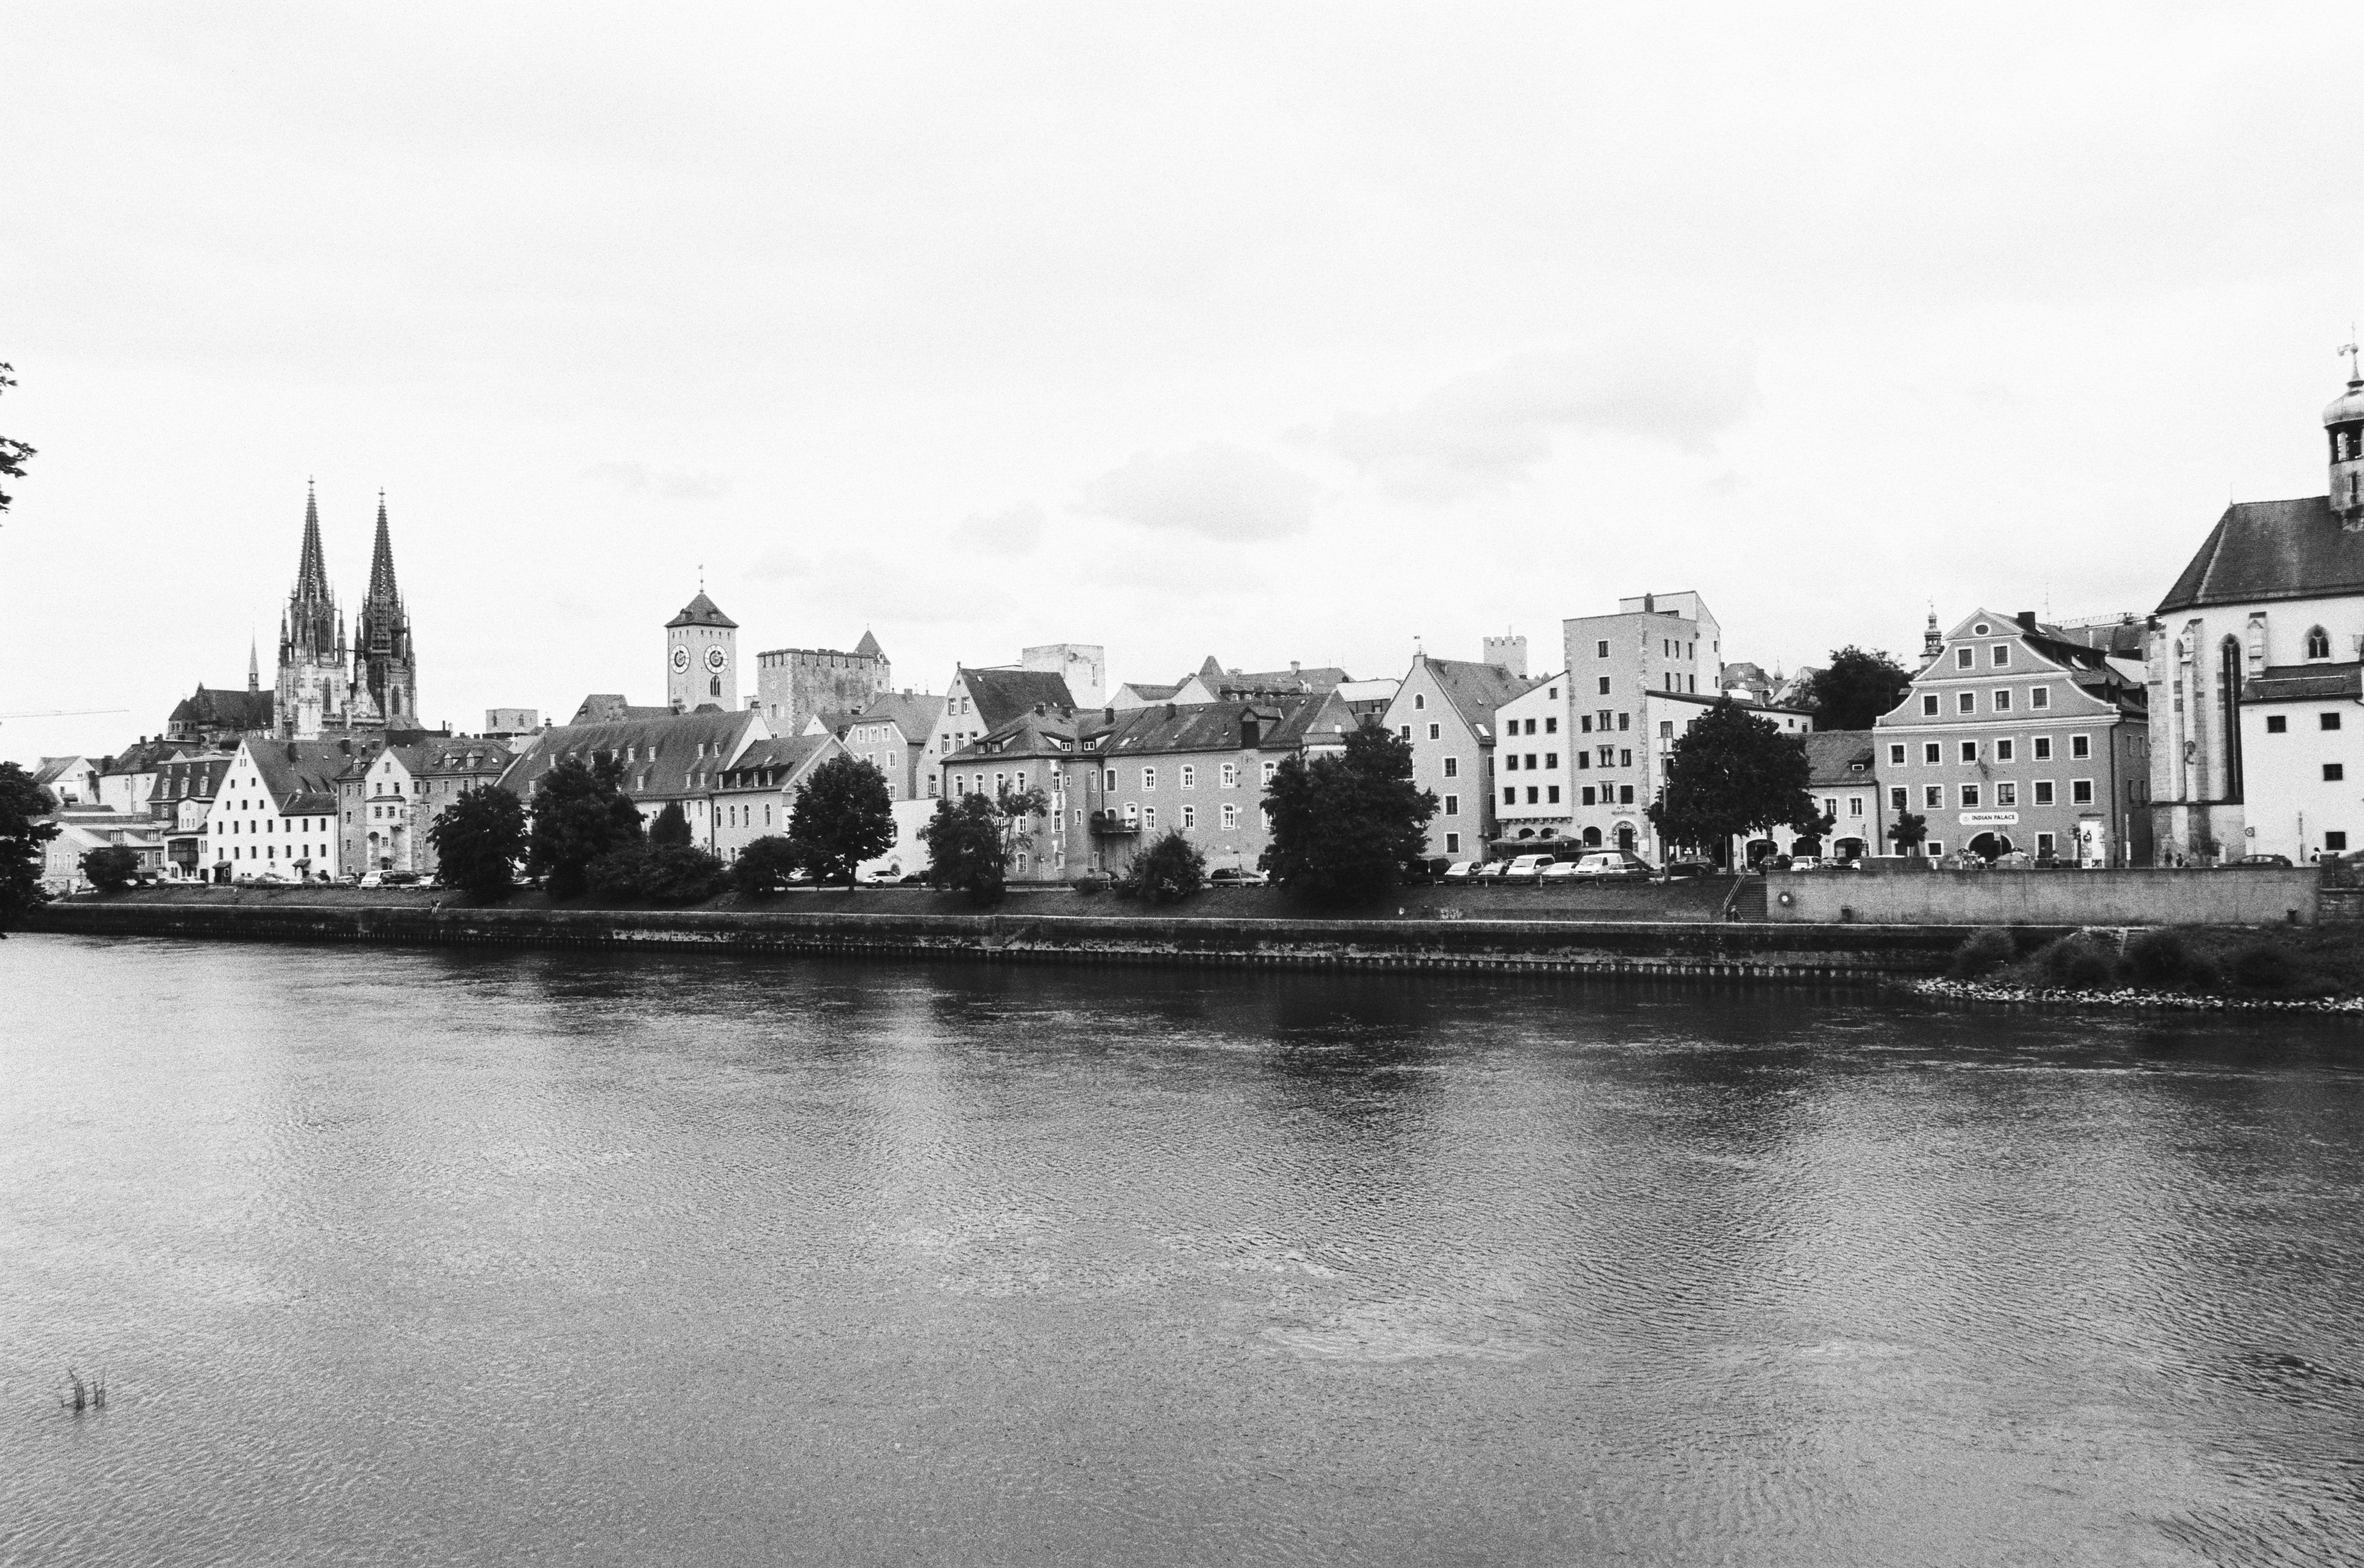 grayscale photography of city near a river